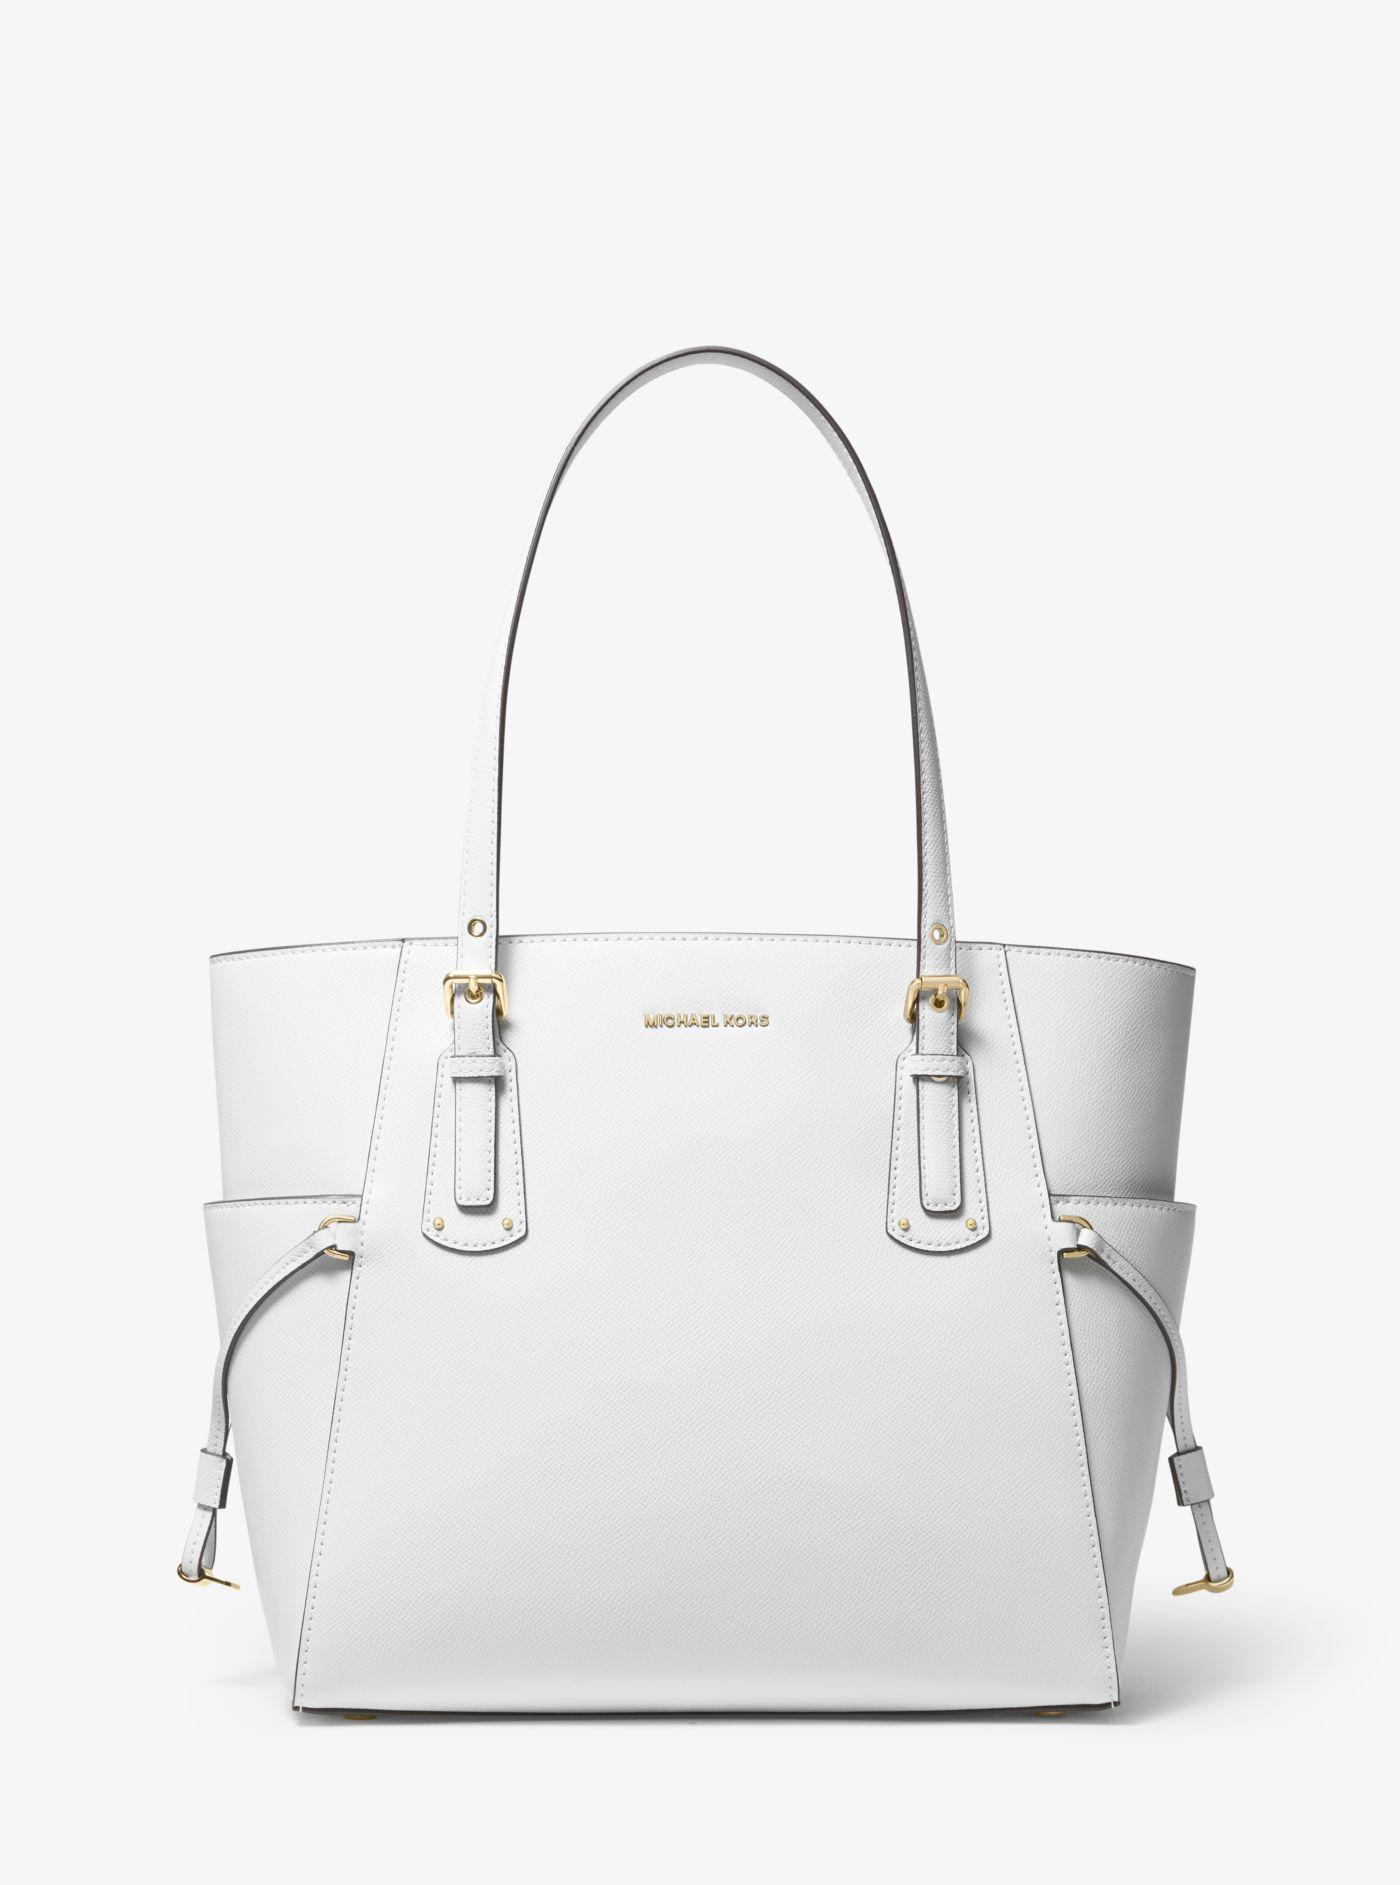 9ce1d5c7a6aab Michael Kors Voyager Crossgrain Leather Tote in White - Lyst